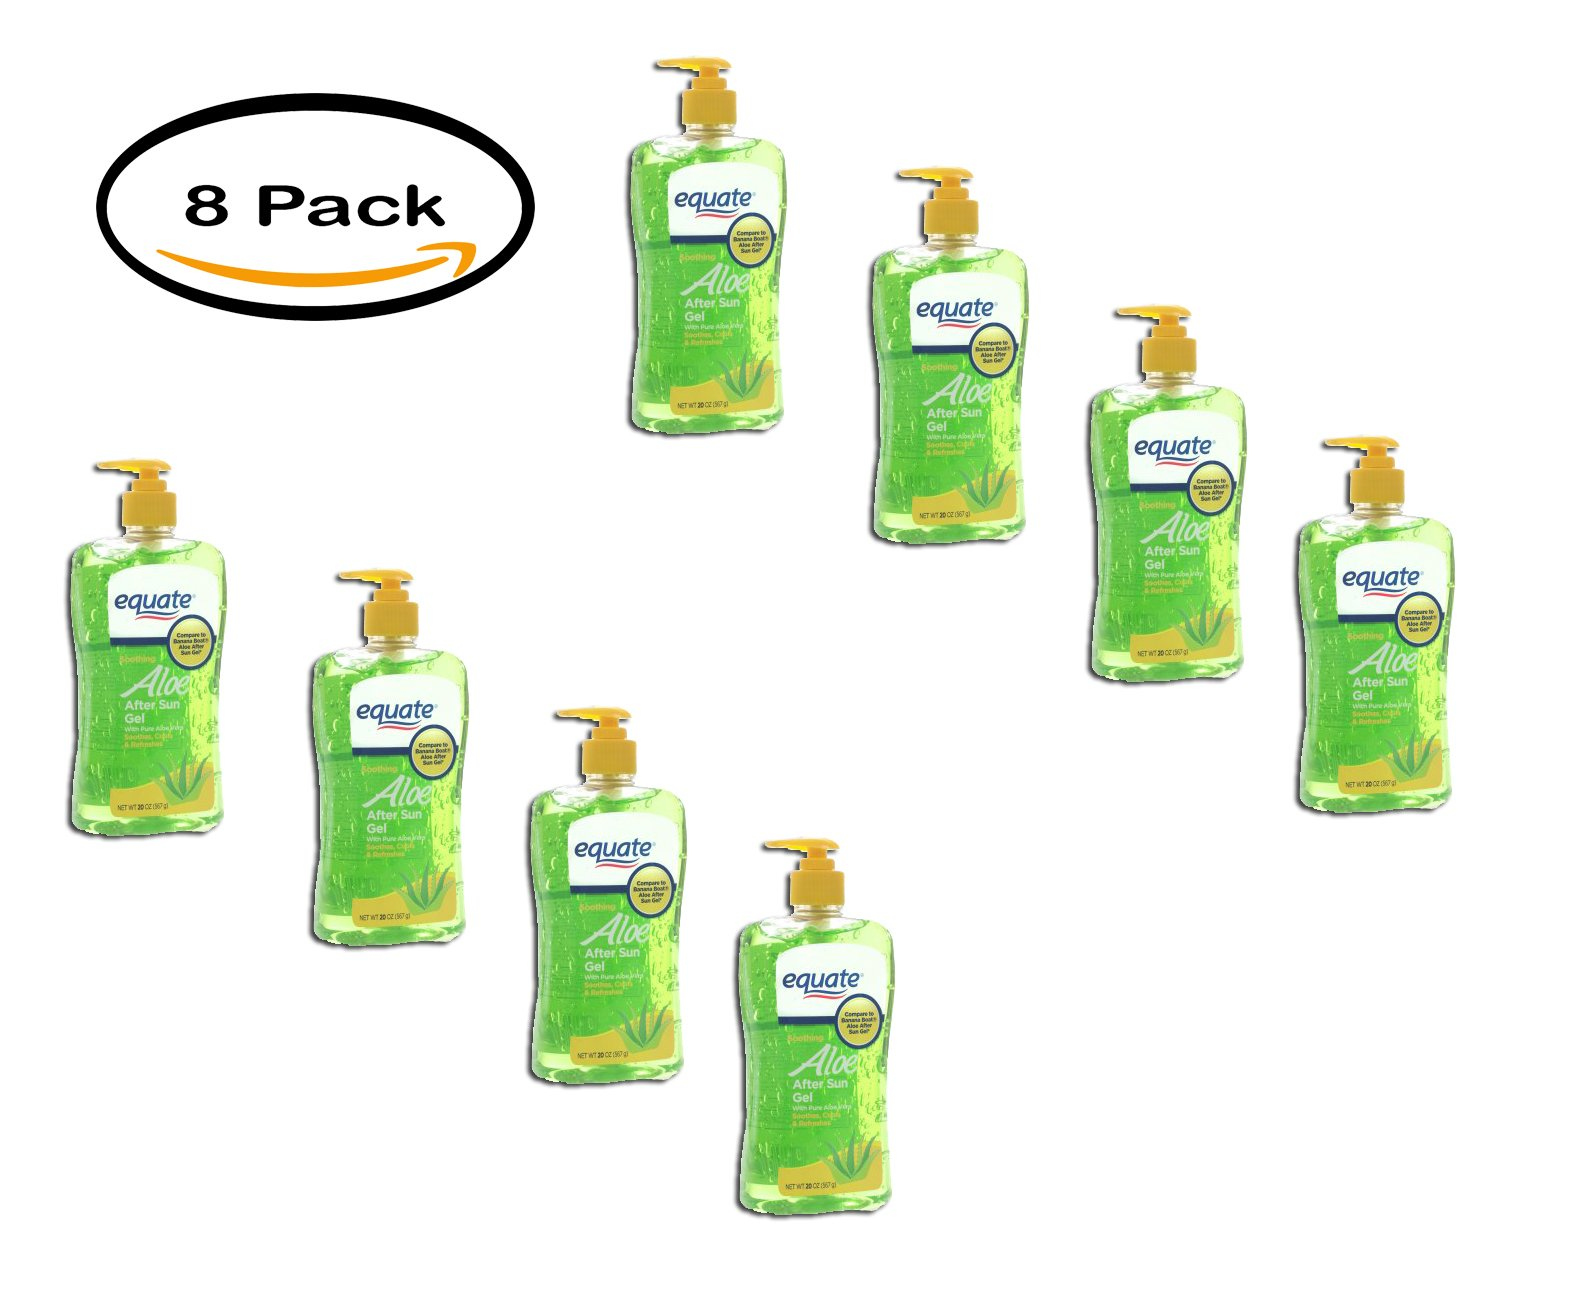 PACK OF 8 - Equate Soothing Aloe After Sun Gel 20 Oz